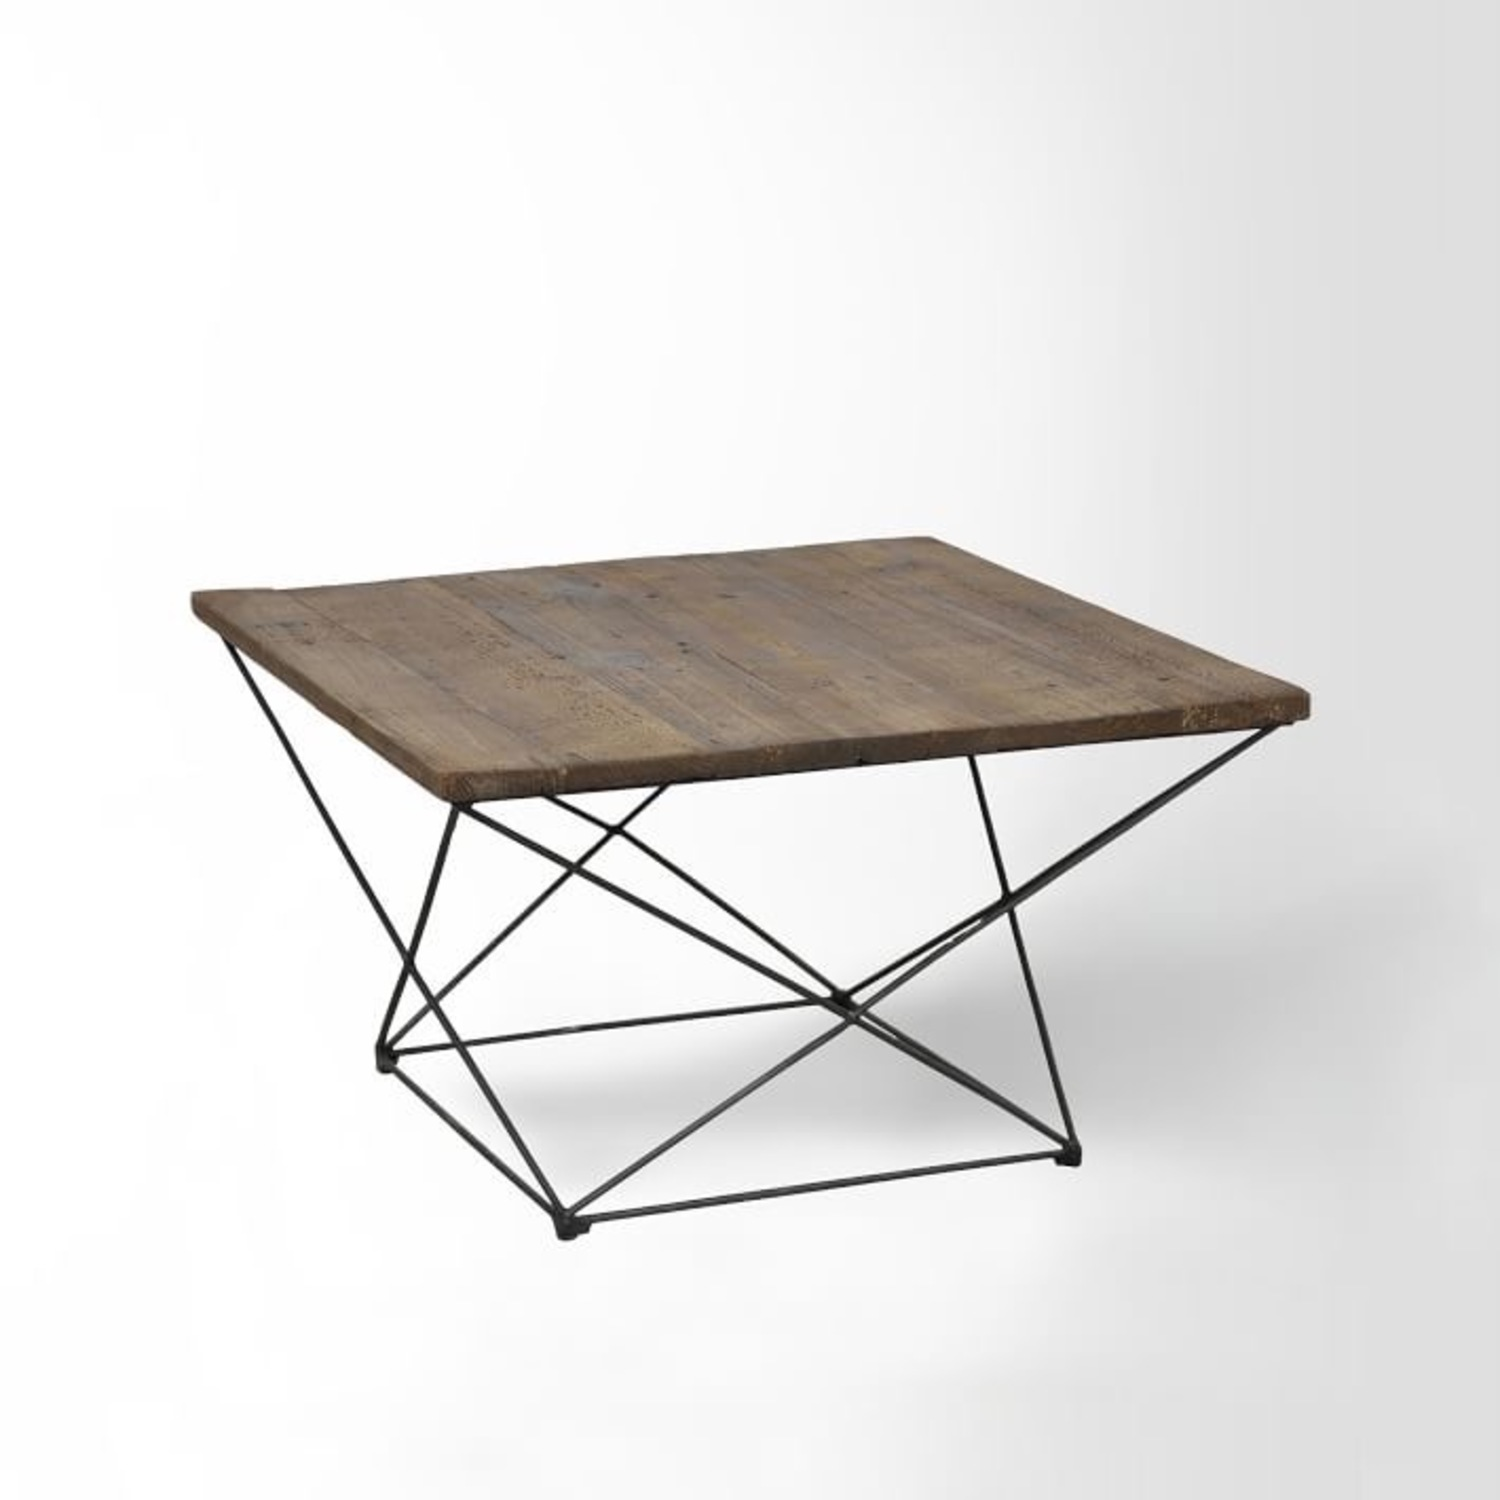 West Elm Reclaimed Wood Coffee Table - image-3